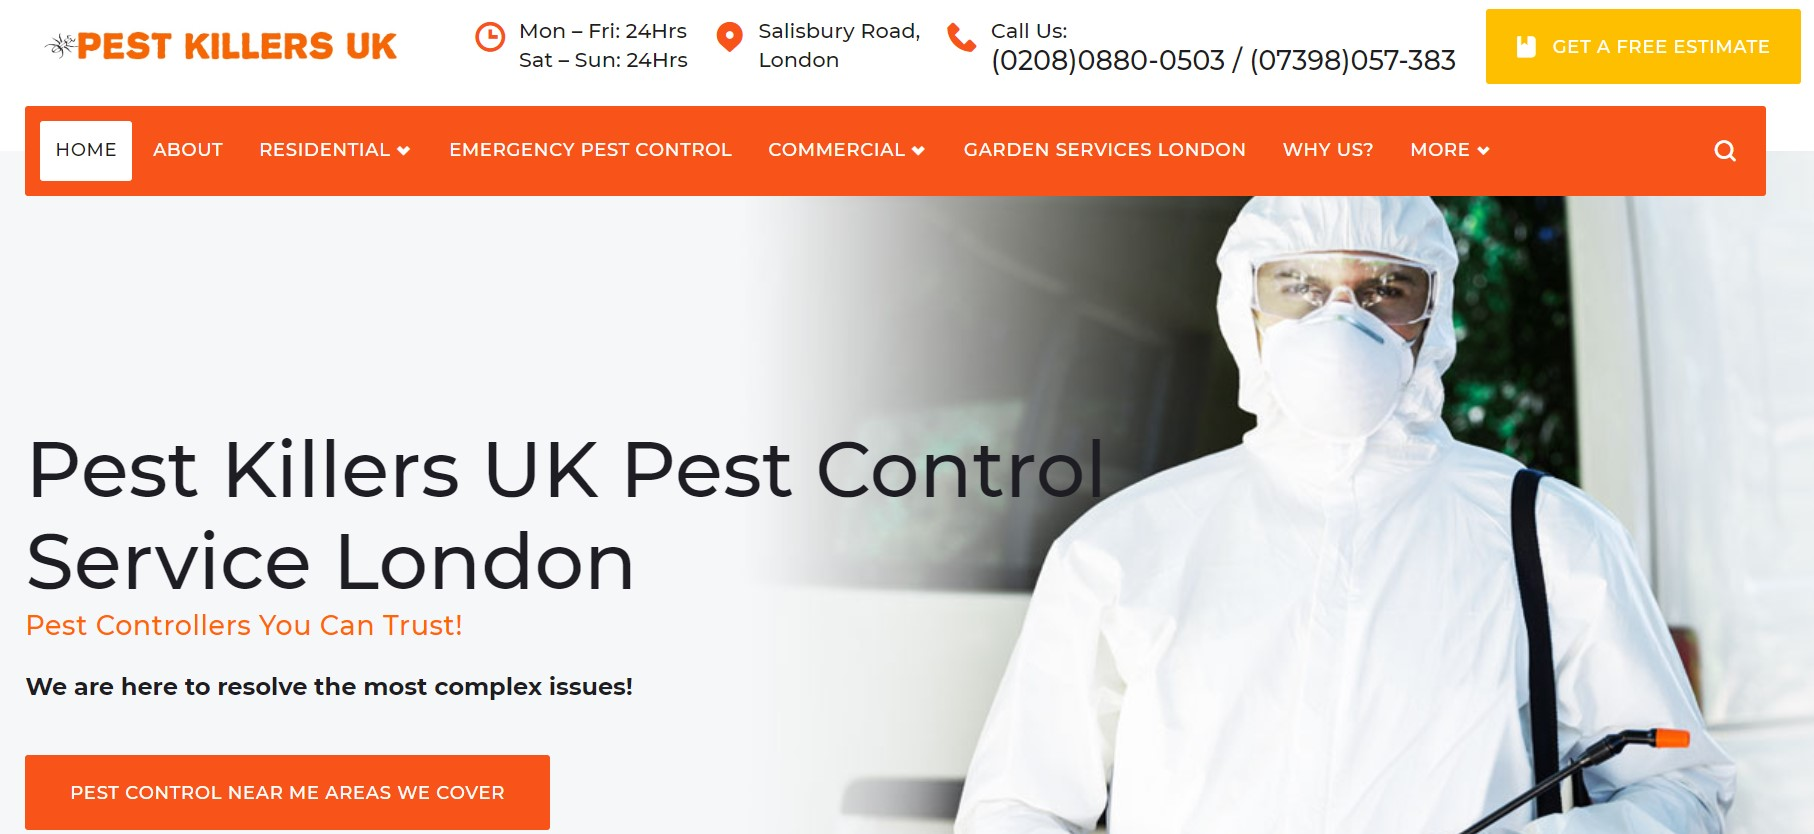 Pest Exterminators - Best Pest Control Company in London